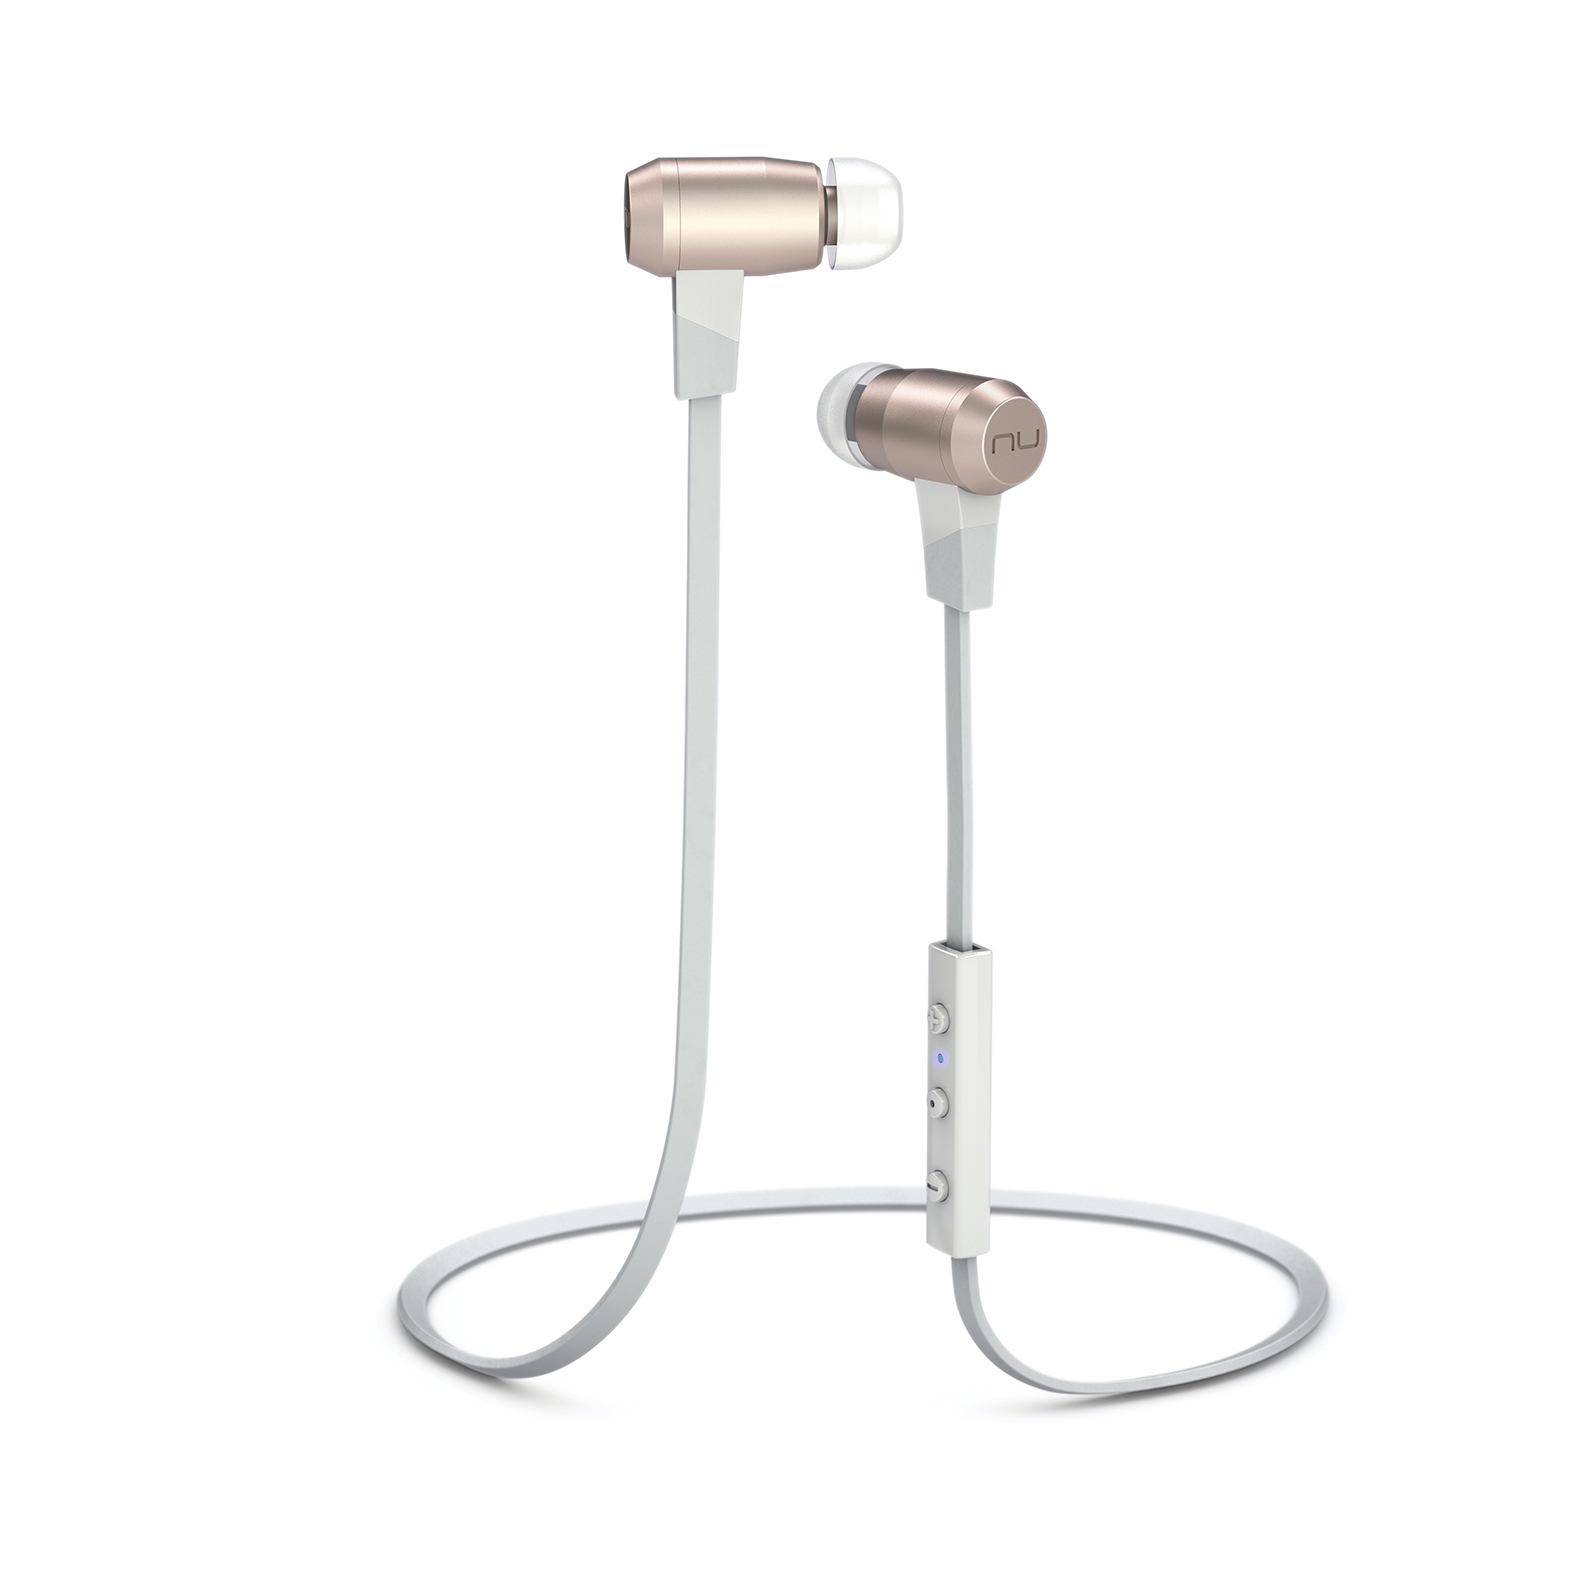 Nuforce BE6 Bluetooth earphones in white with remote.